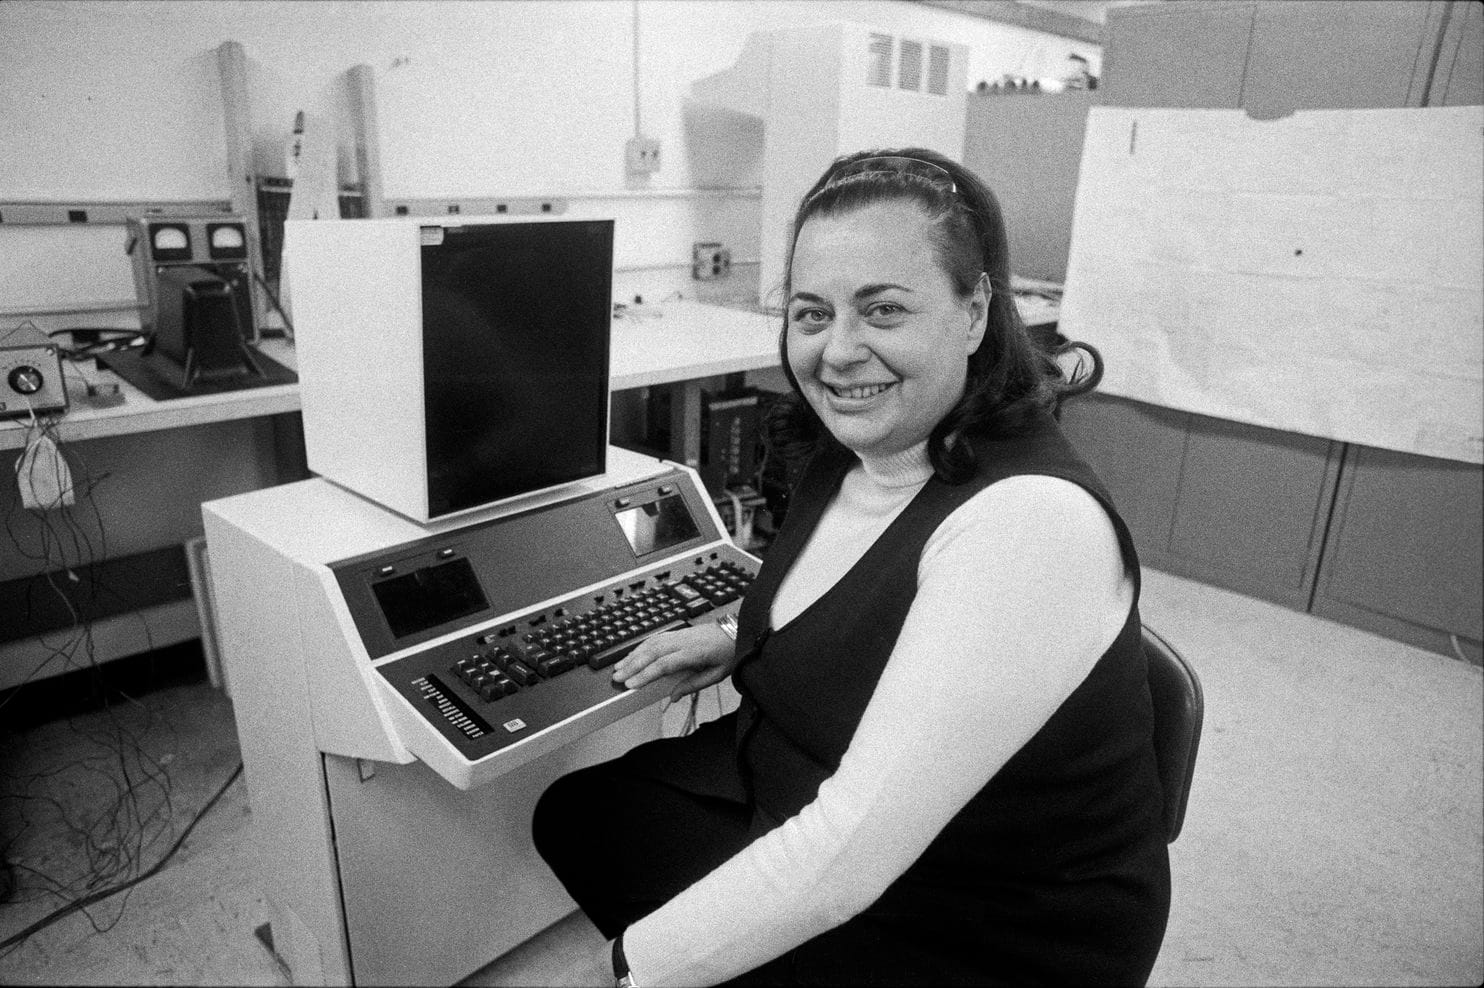 Evelyn Berezin, entrepreneur and engineer who designed early word processor, dies at 93